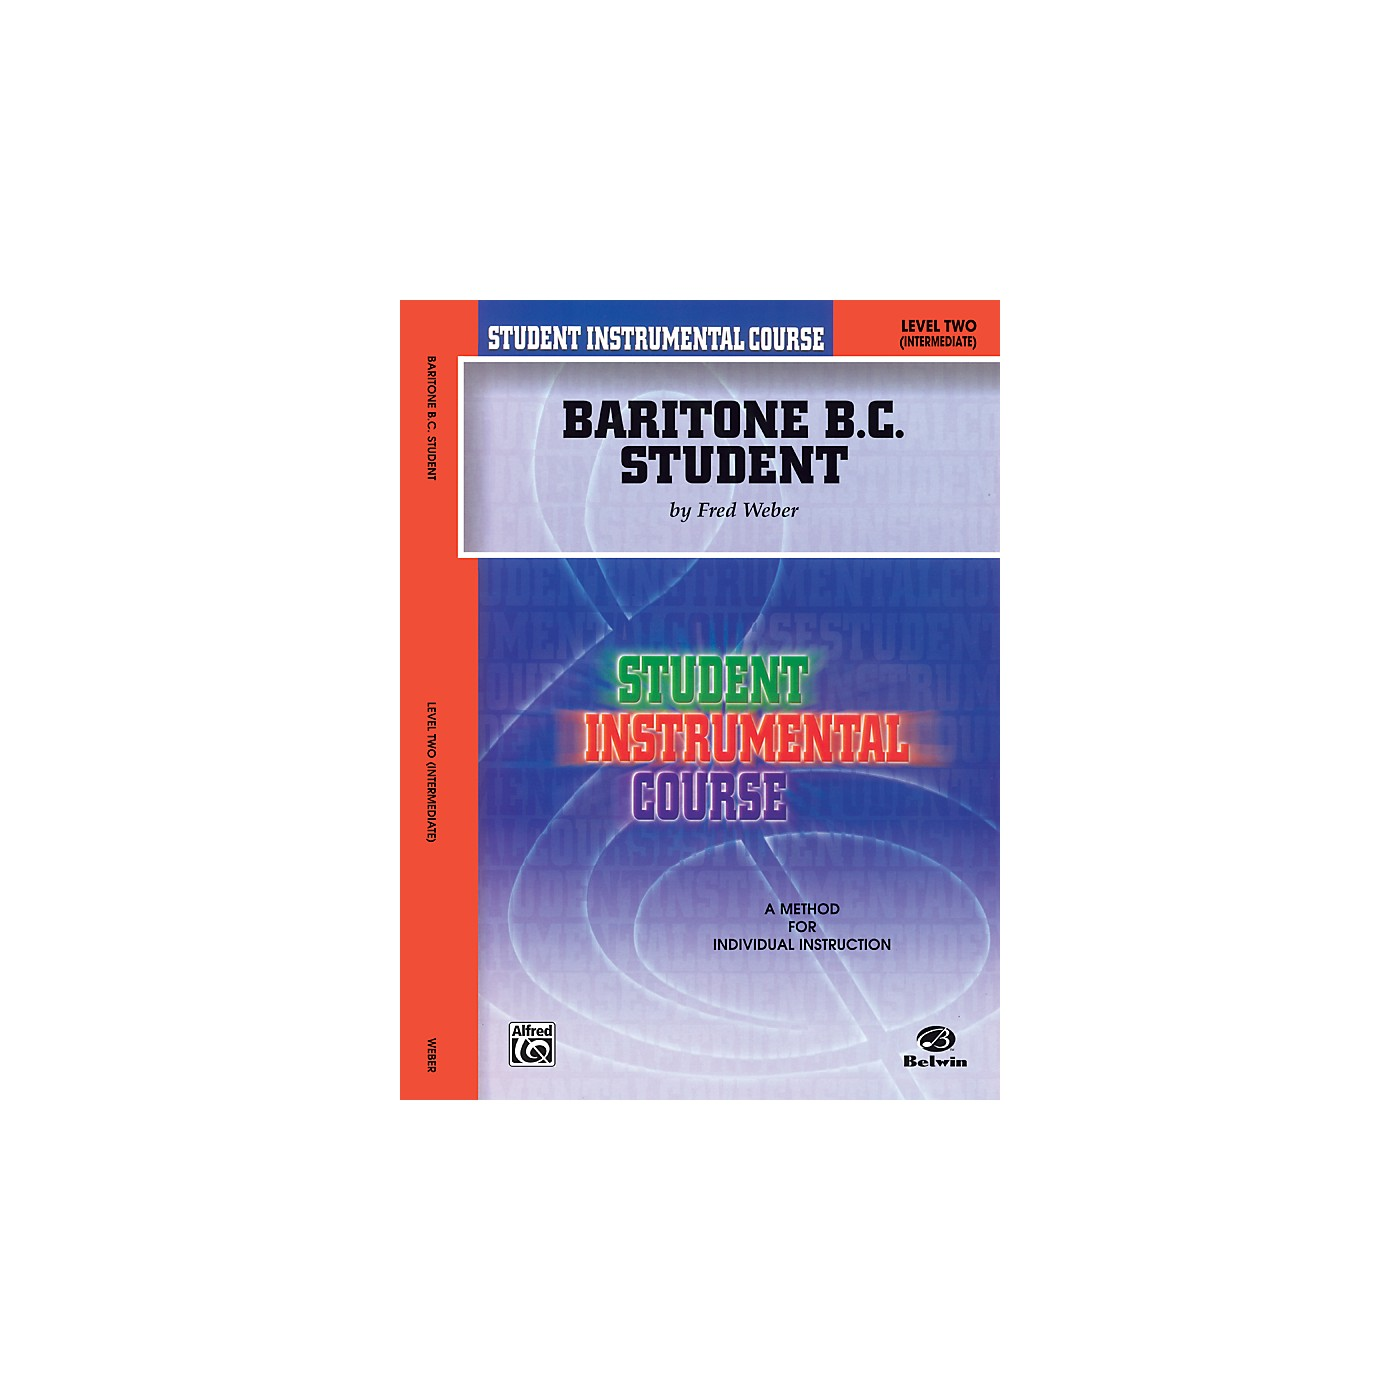 Alfred Student Instrumental Course Baritone (B.C.) Student Level II thumbnail